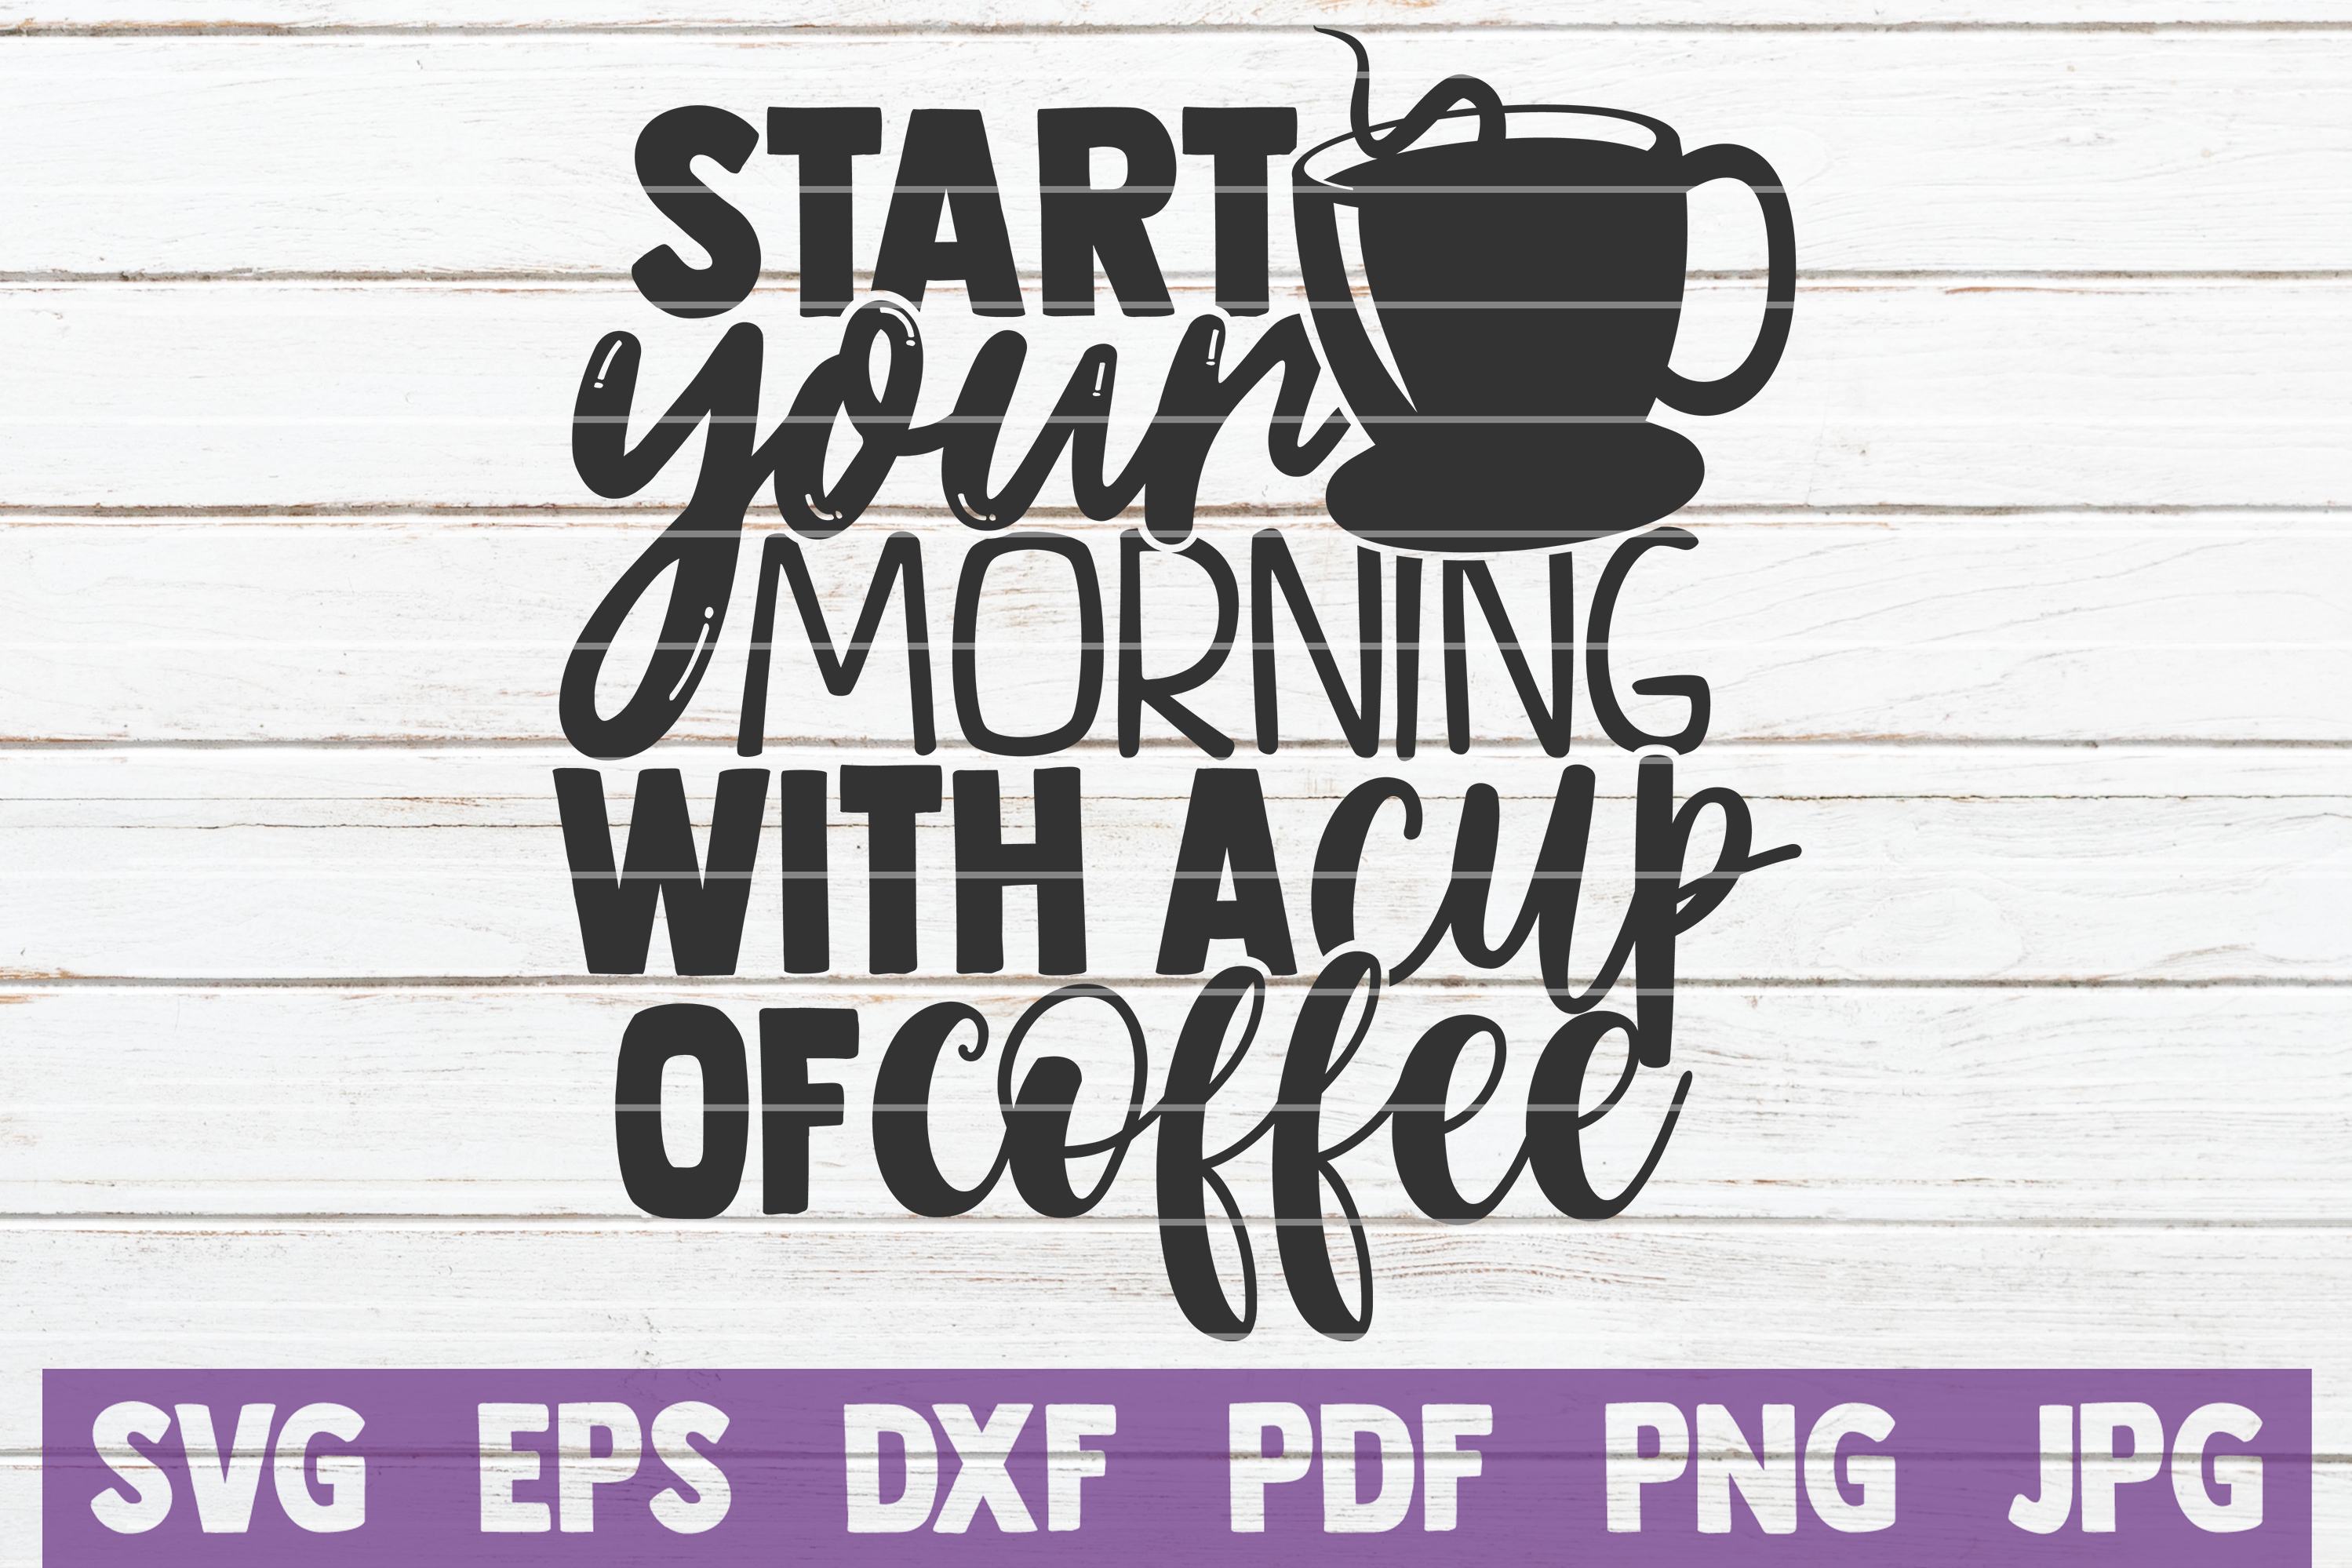 Download Free Start Your Morning With A Cup Of Coffee Graphic By SVG Cut Files